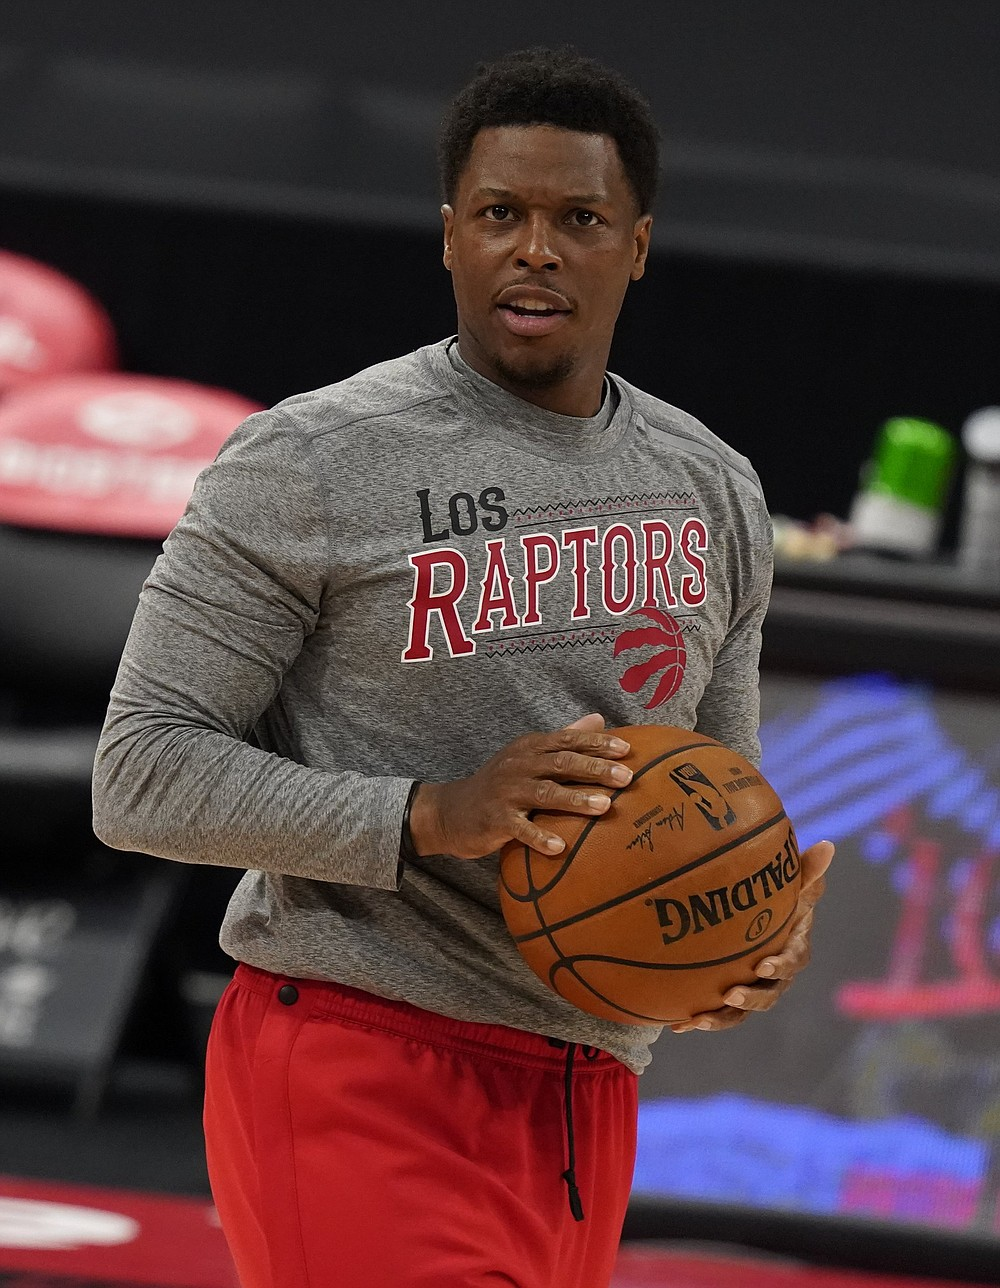 Toronto Raptors guard Kyle Lowry (7) before an NBA basketball game against the Denver Nuggets Wednesday, March 24, 2021, in Tampa, Fla. (AP Photo/Chris O'Meara)